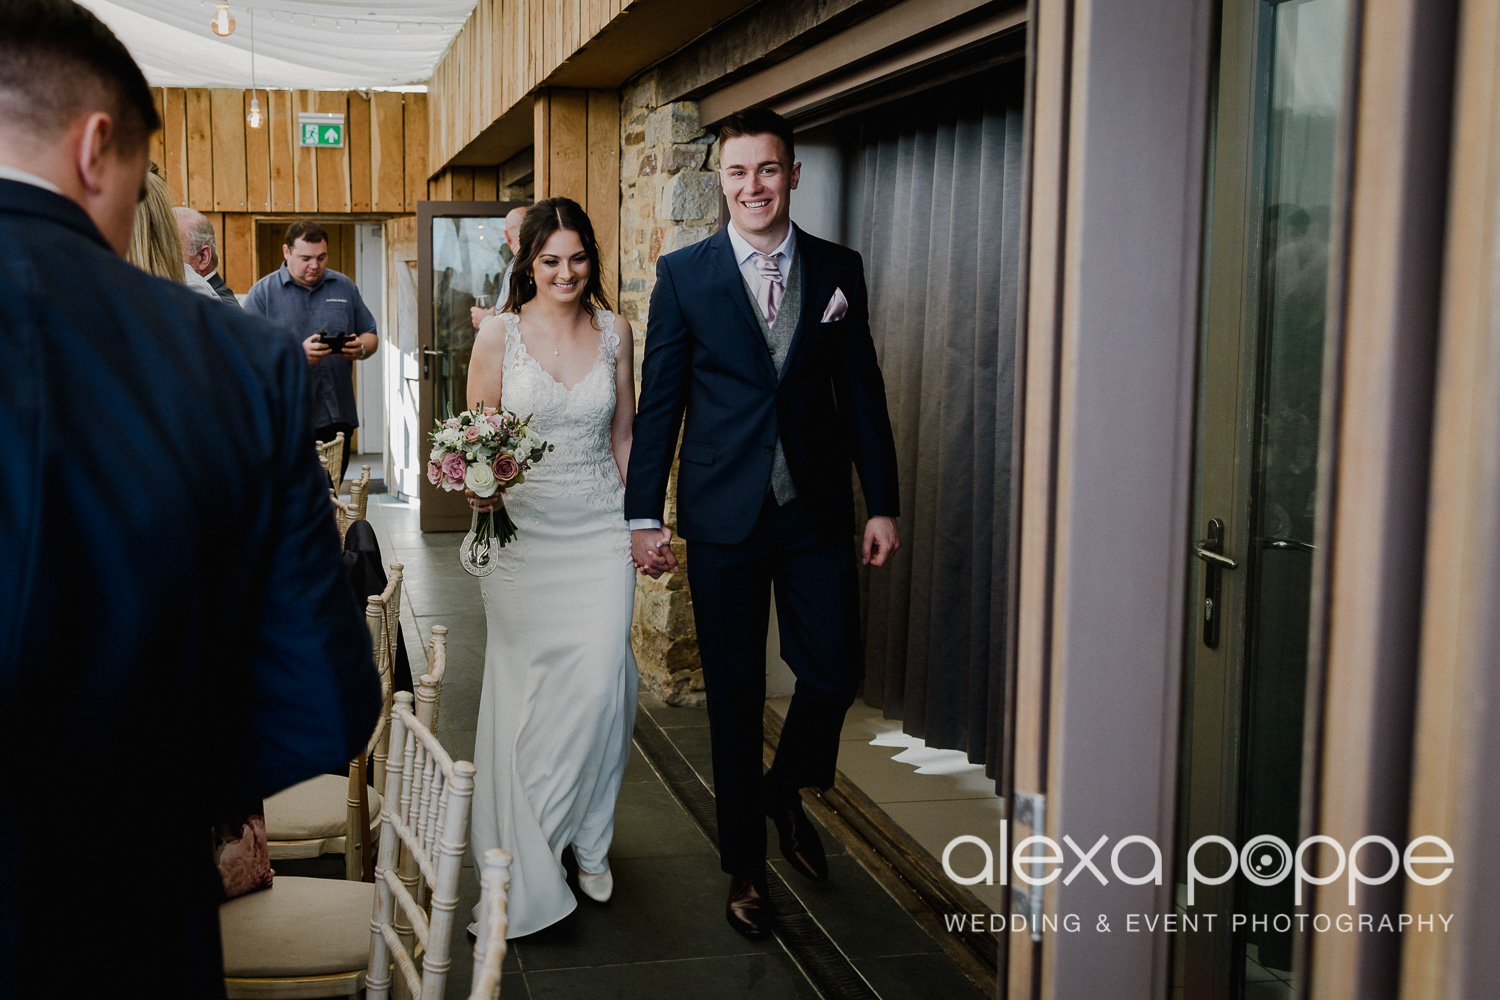 BJ_wedding_trevenna-58.jpg